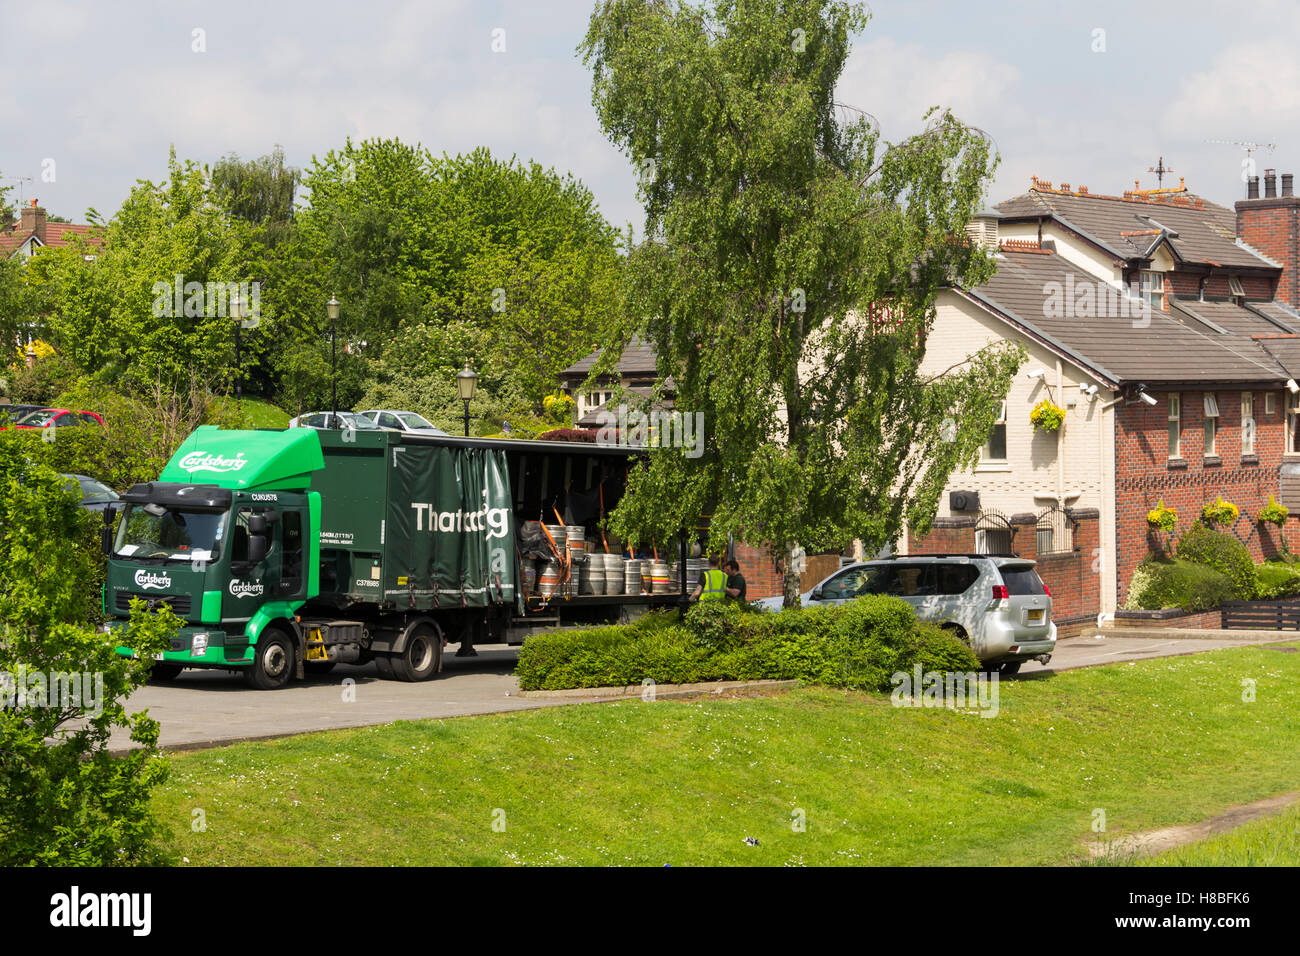 Carlsberg branded lorry making a delivery of beer to The Moorings pub on Boothstown marina on the Bridgewater canal. - Stock Image